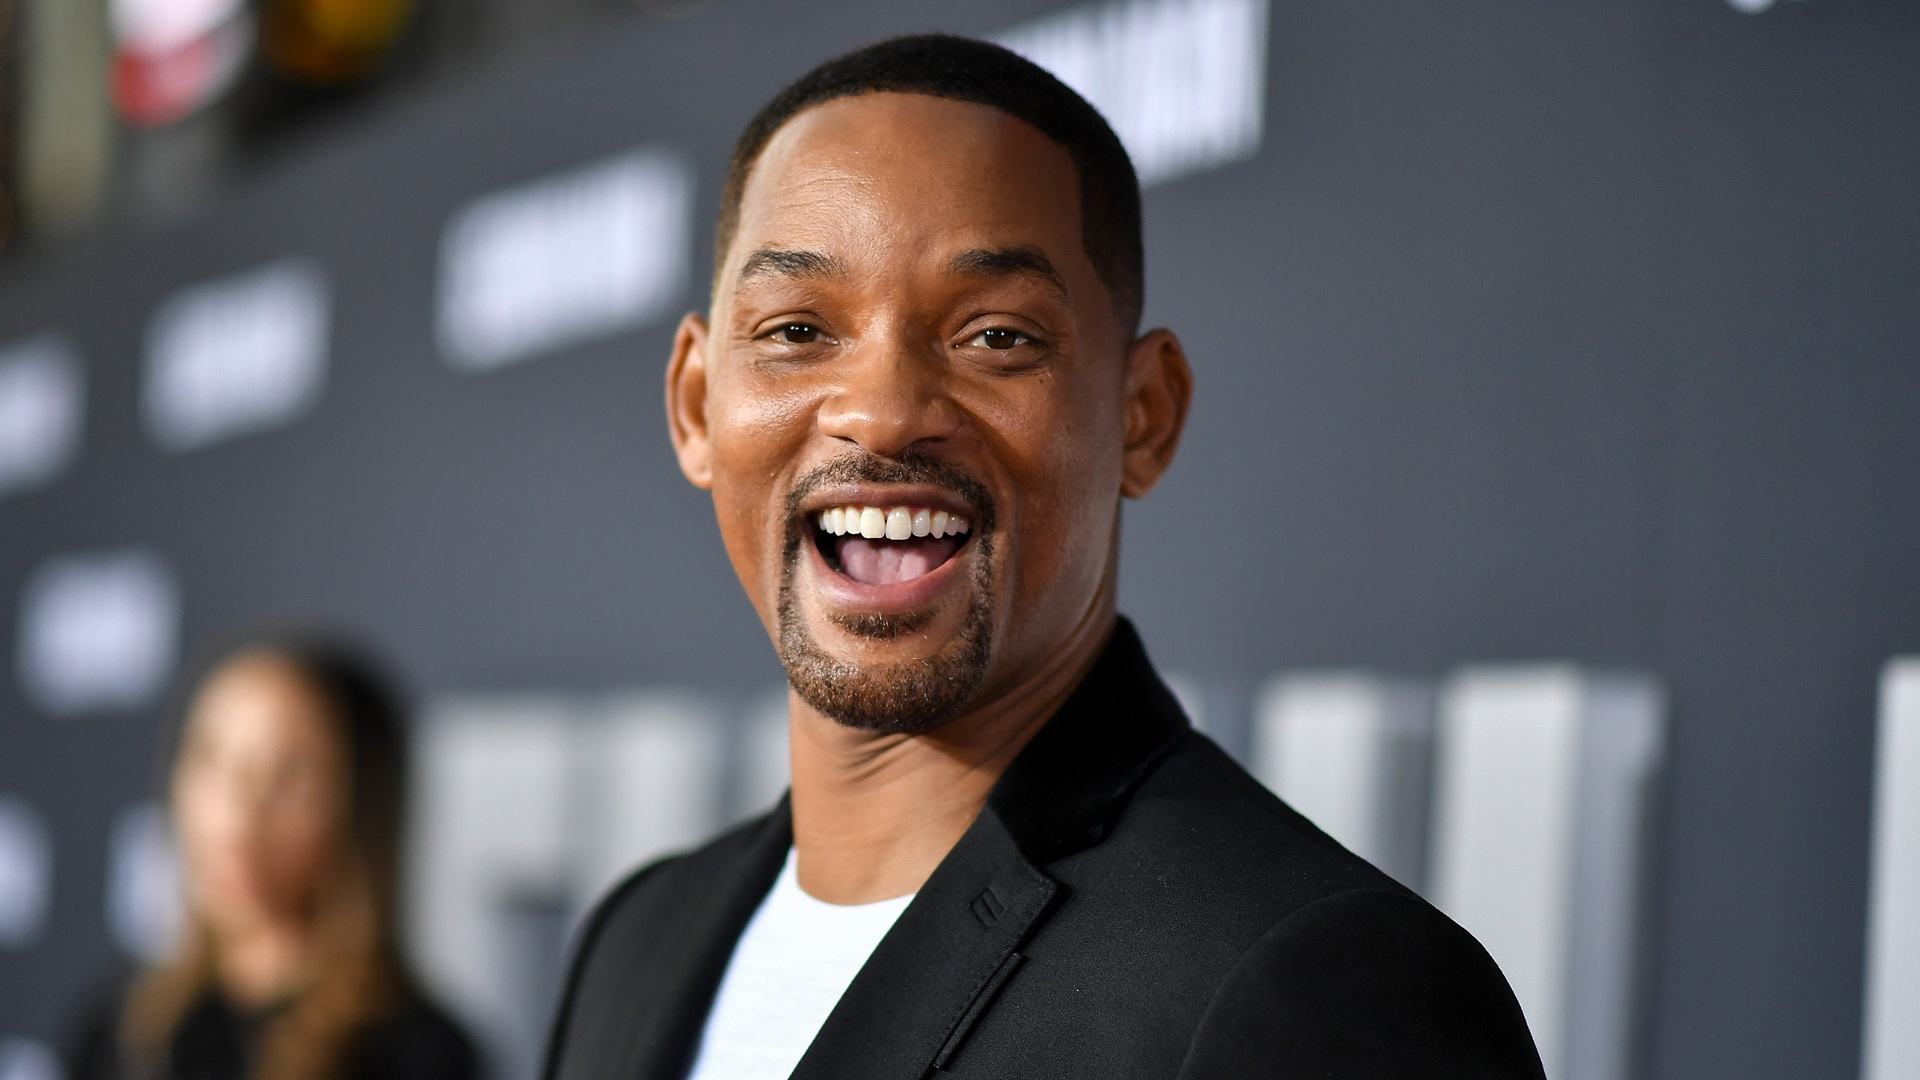 ¿Will Smith entra al mundo de la política?